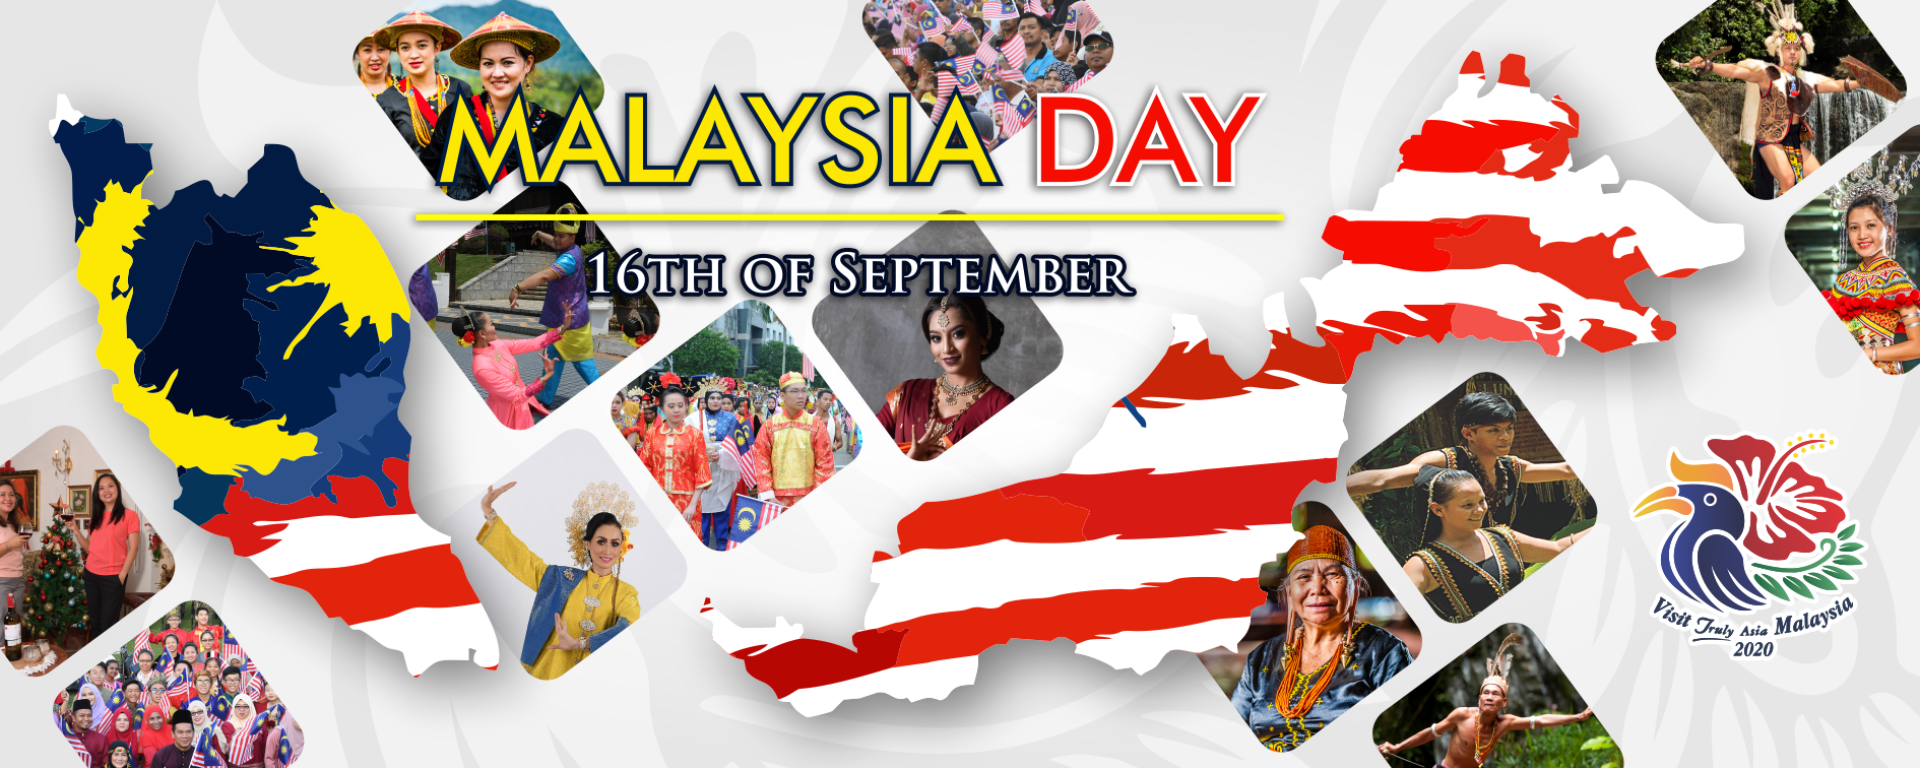 <div class='slider-left'><span class='caption'></span><div class='action '><a href='http://www.malaysia.travel/en/my/events/2019/9/malaysia-day-2019' class='btn btn-danger btn-lg' target=''>read more</a></div></div>